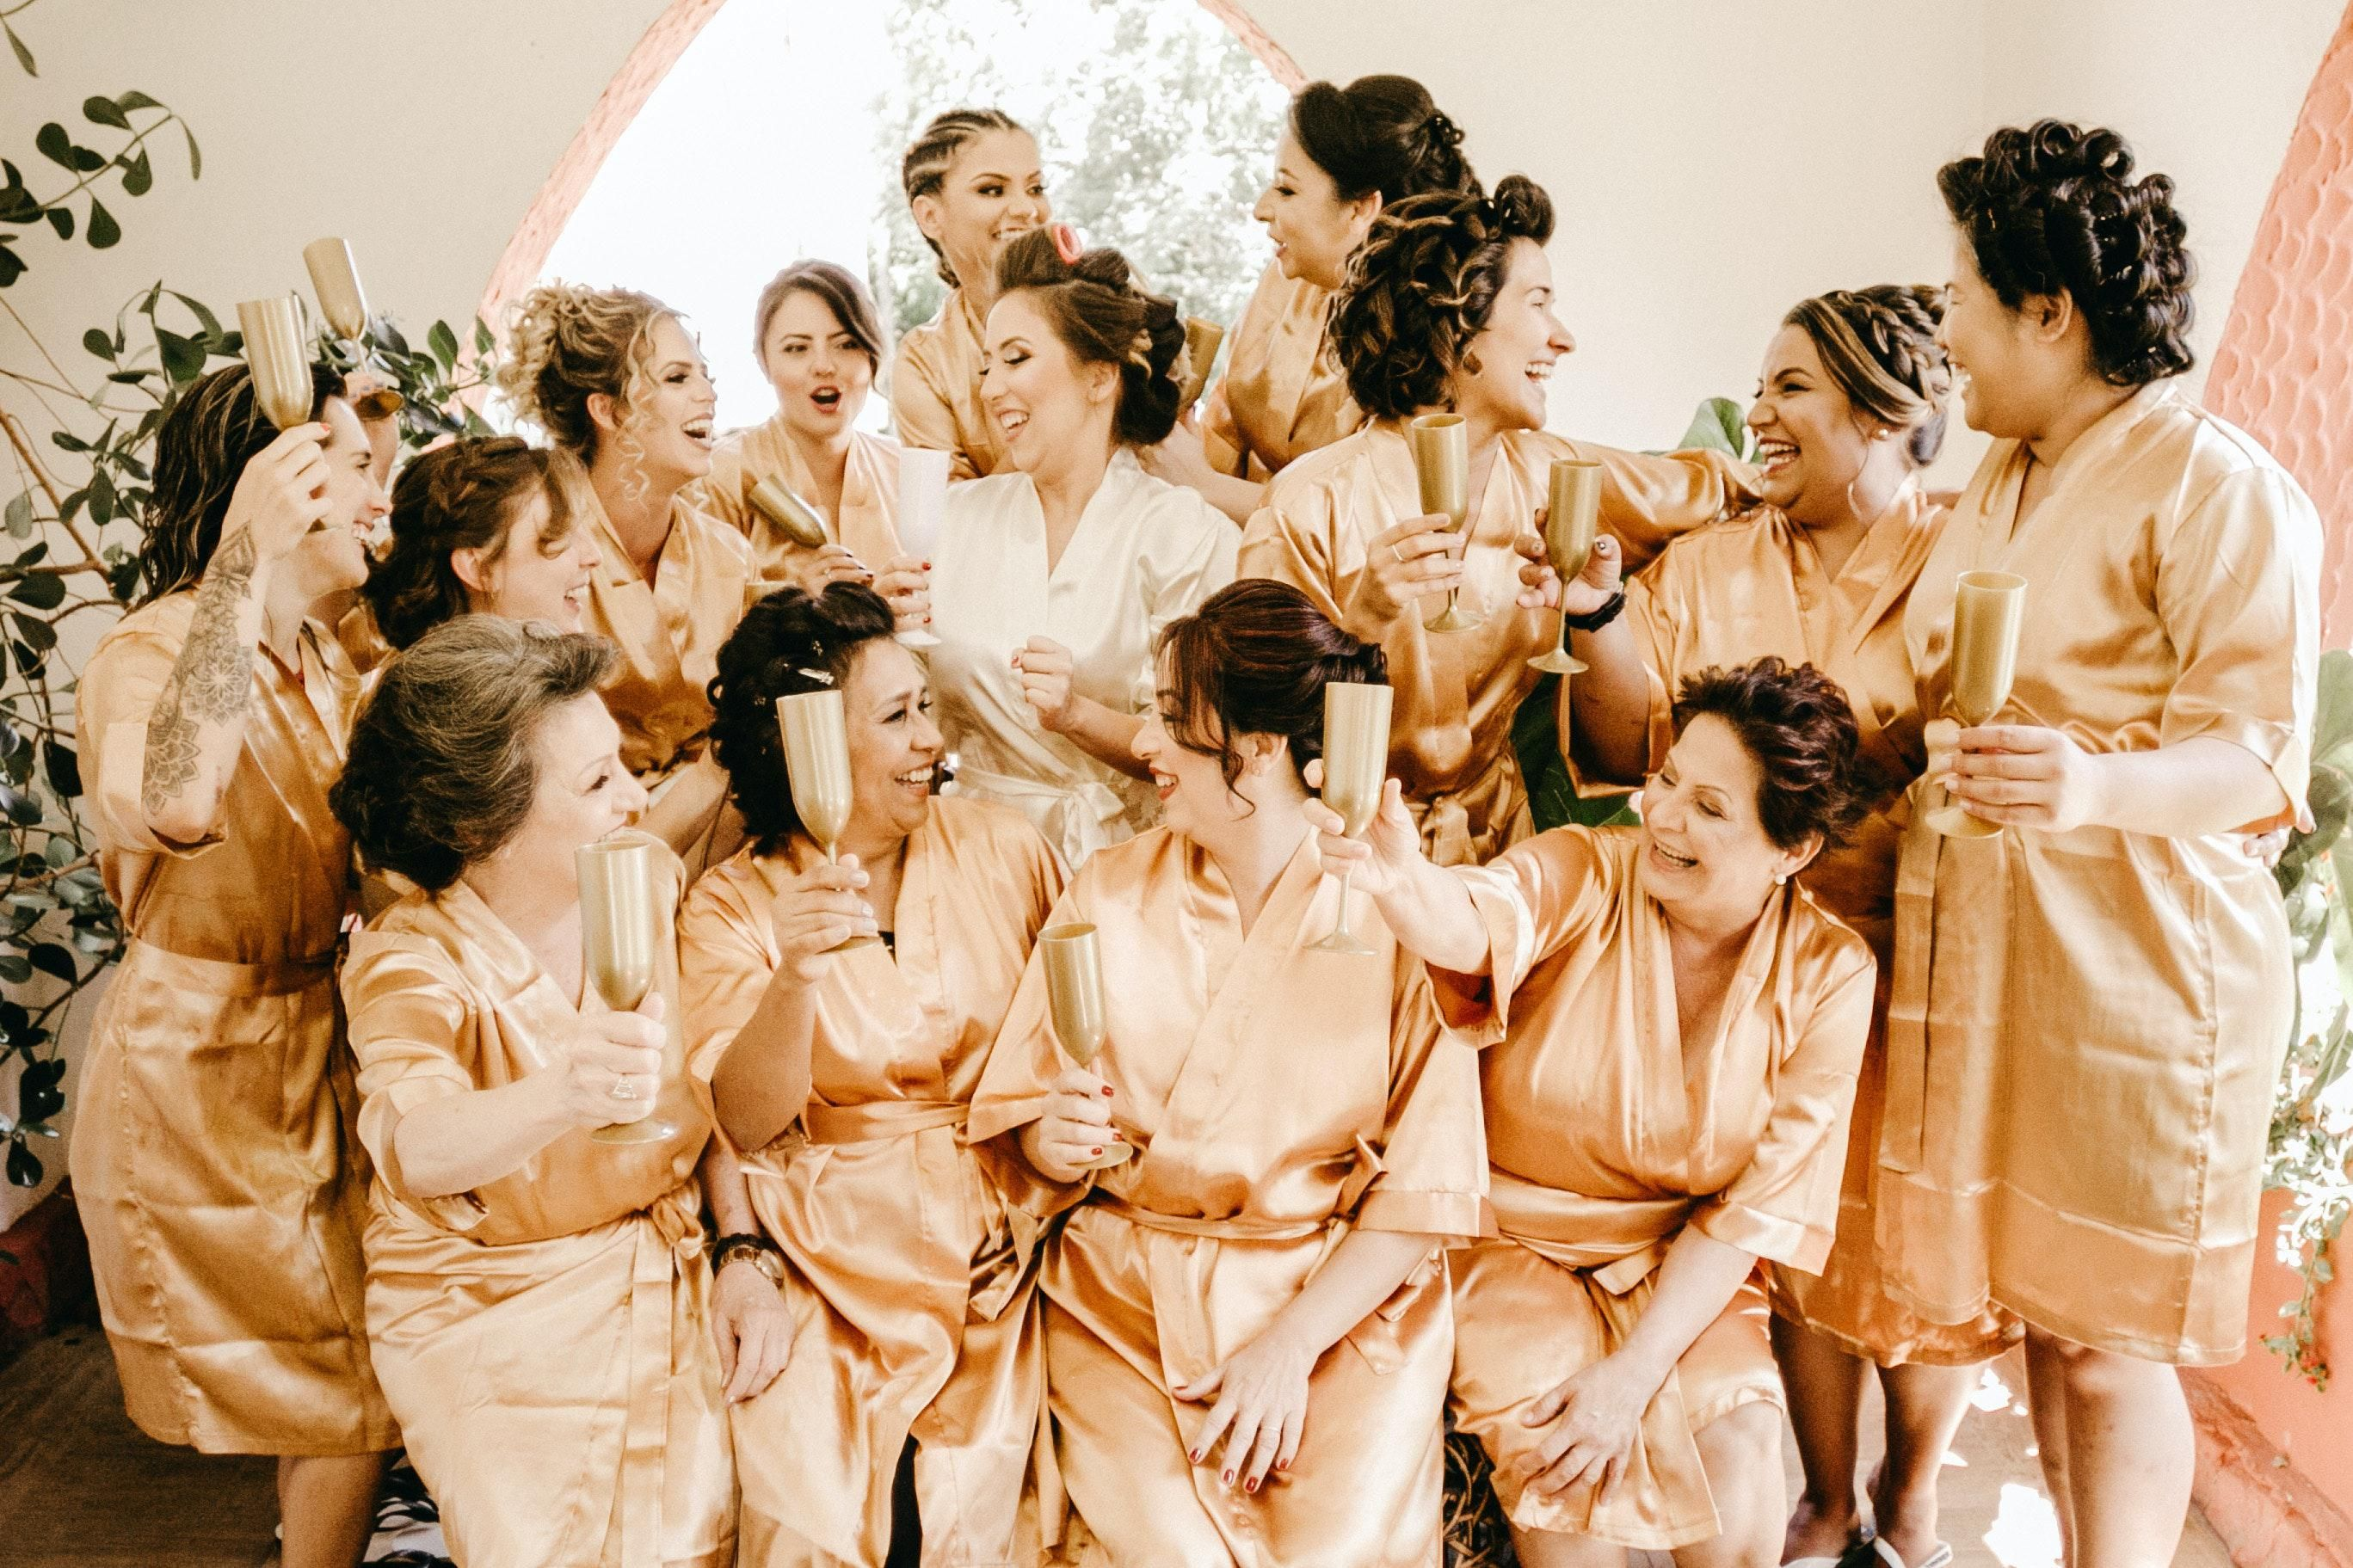 Ways to Welcome New Sisters to Your Sorority